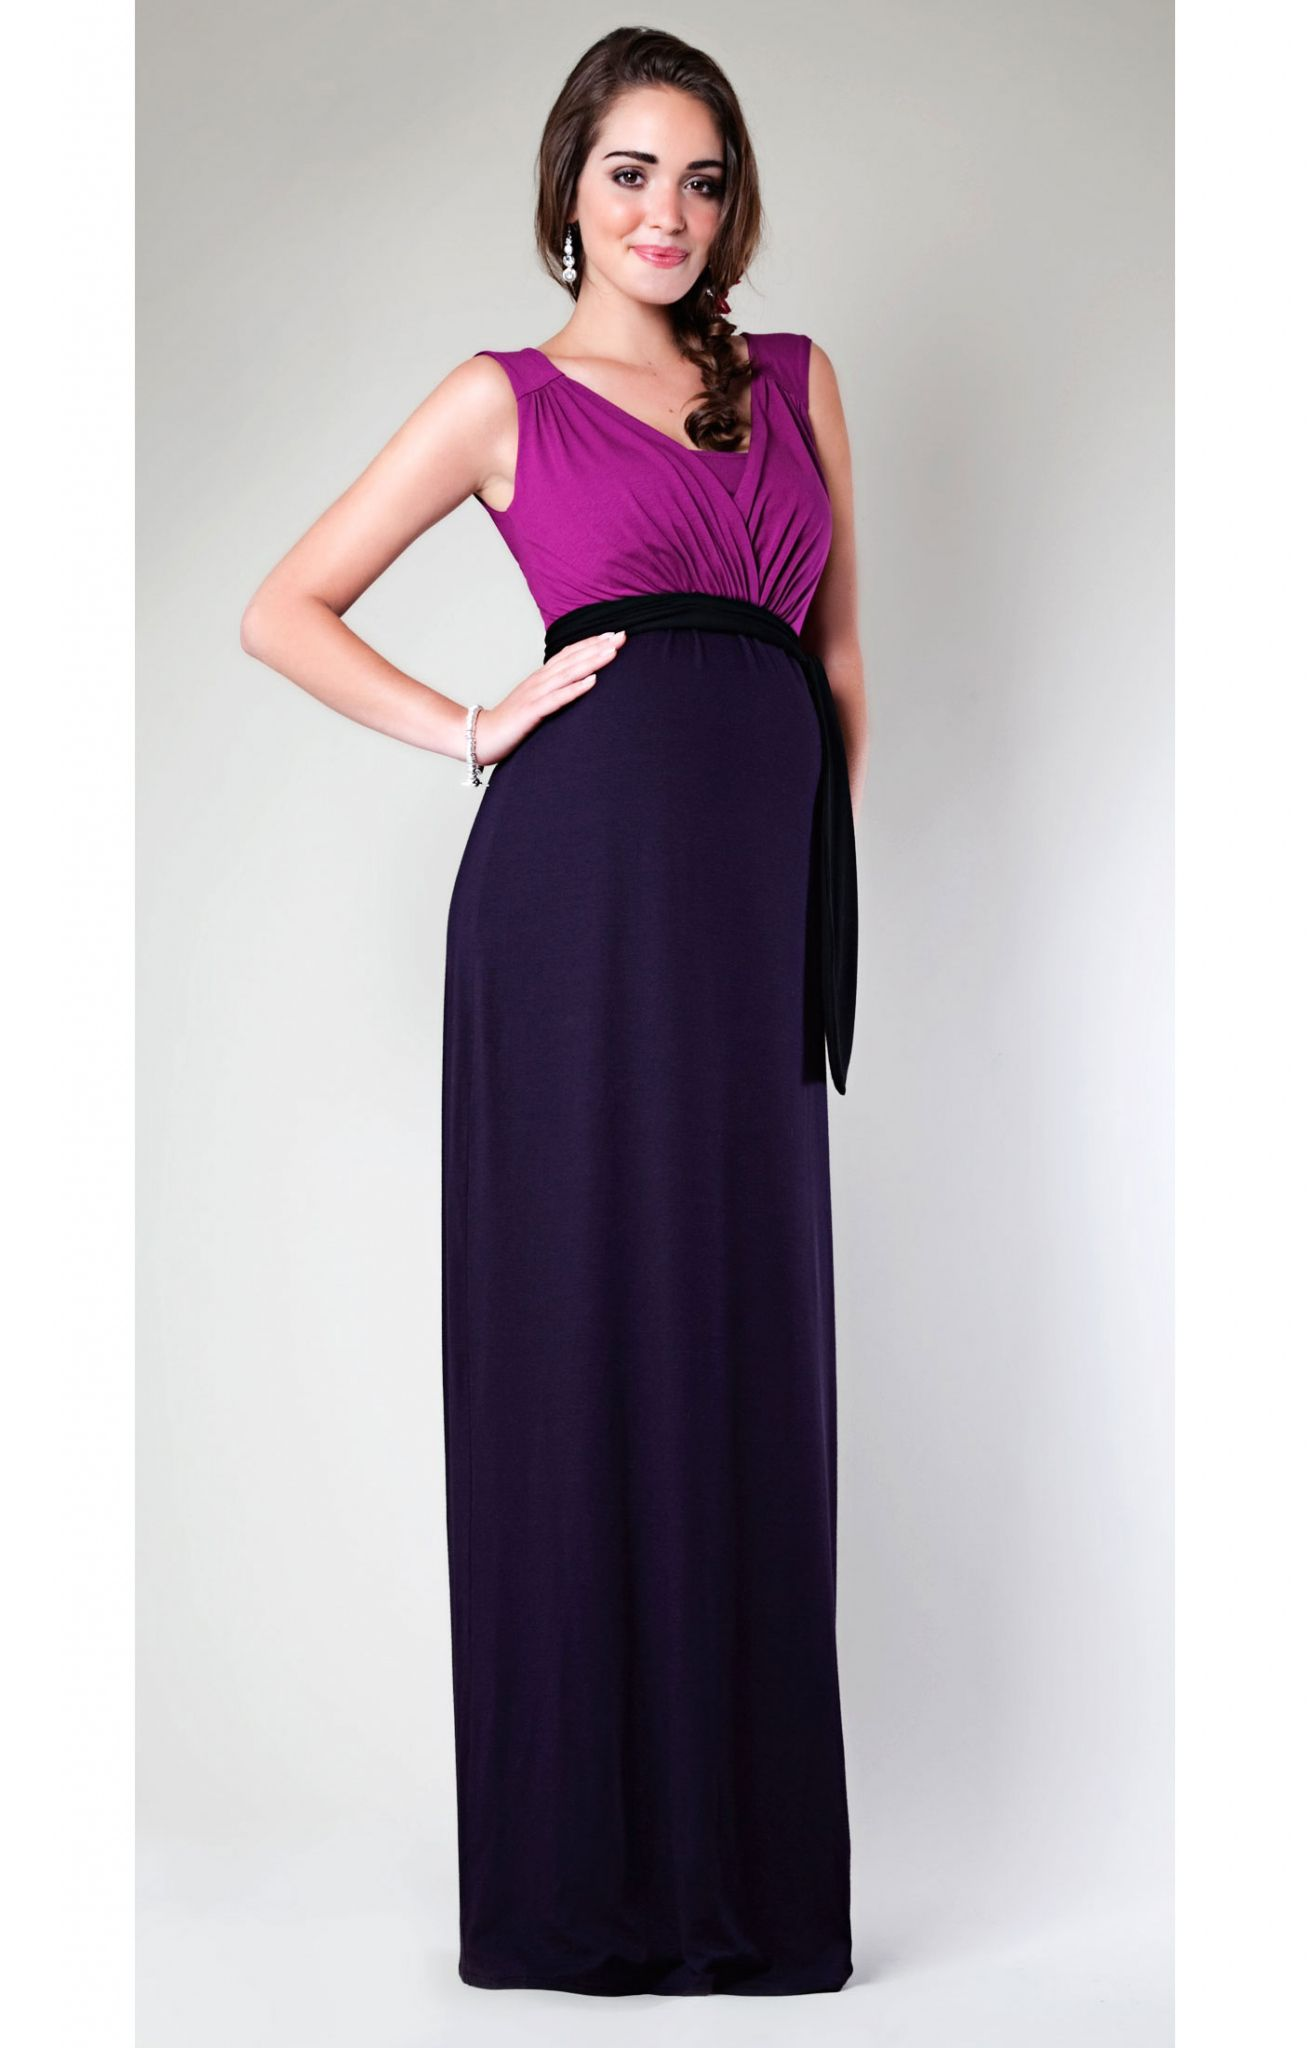 Maternity Maxi Dresses for Weddings - How to Dress for A Wedding ...